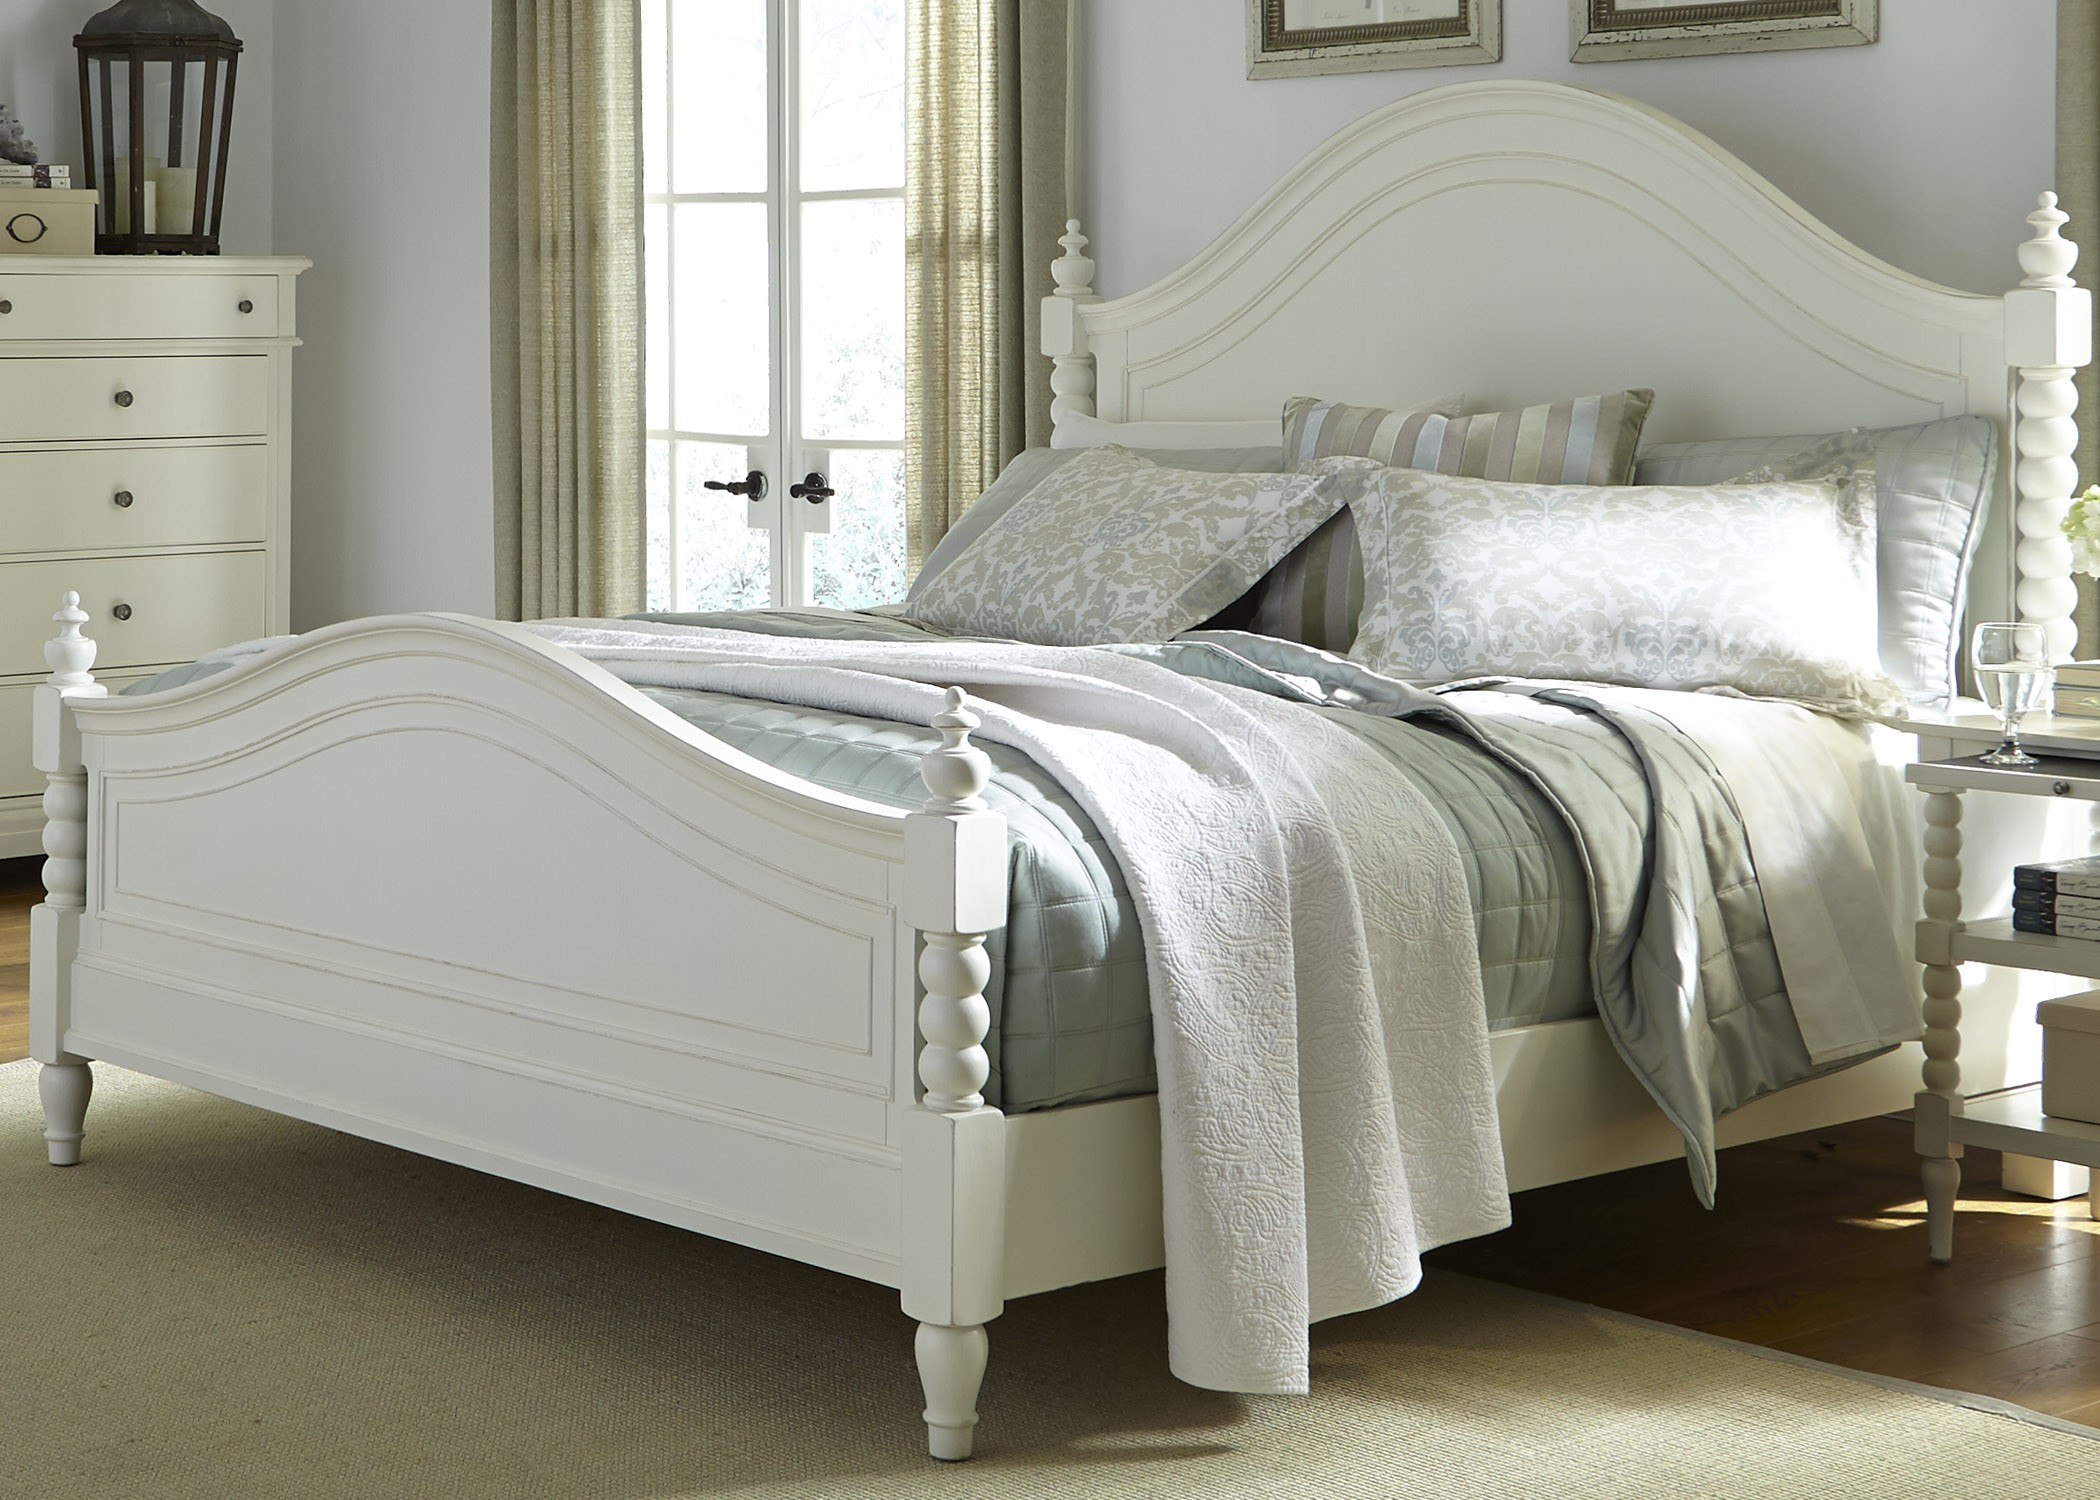 Harbor View Ii Queen Poster Bed From Liberty 631 Br Qps